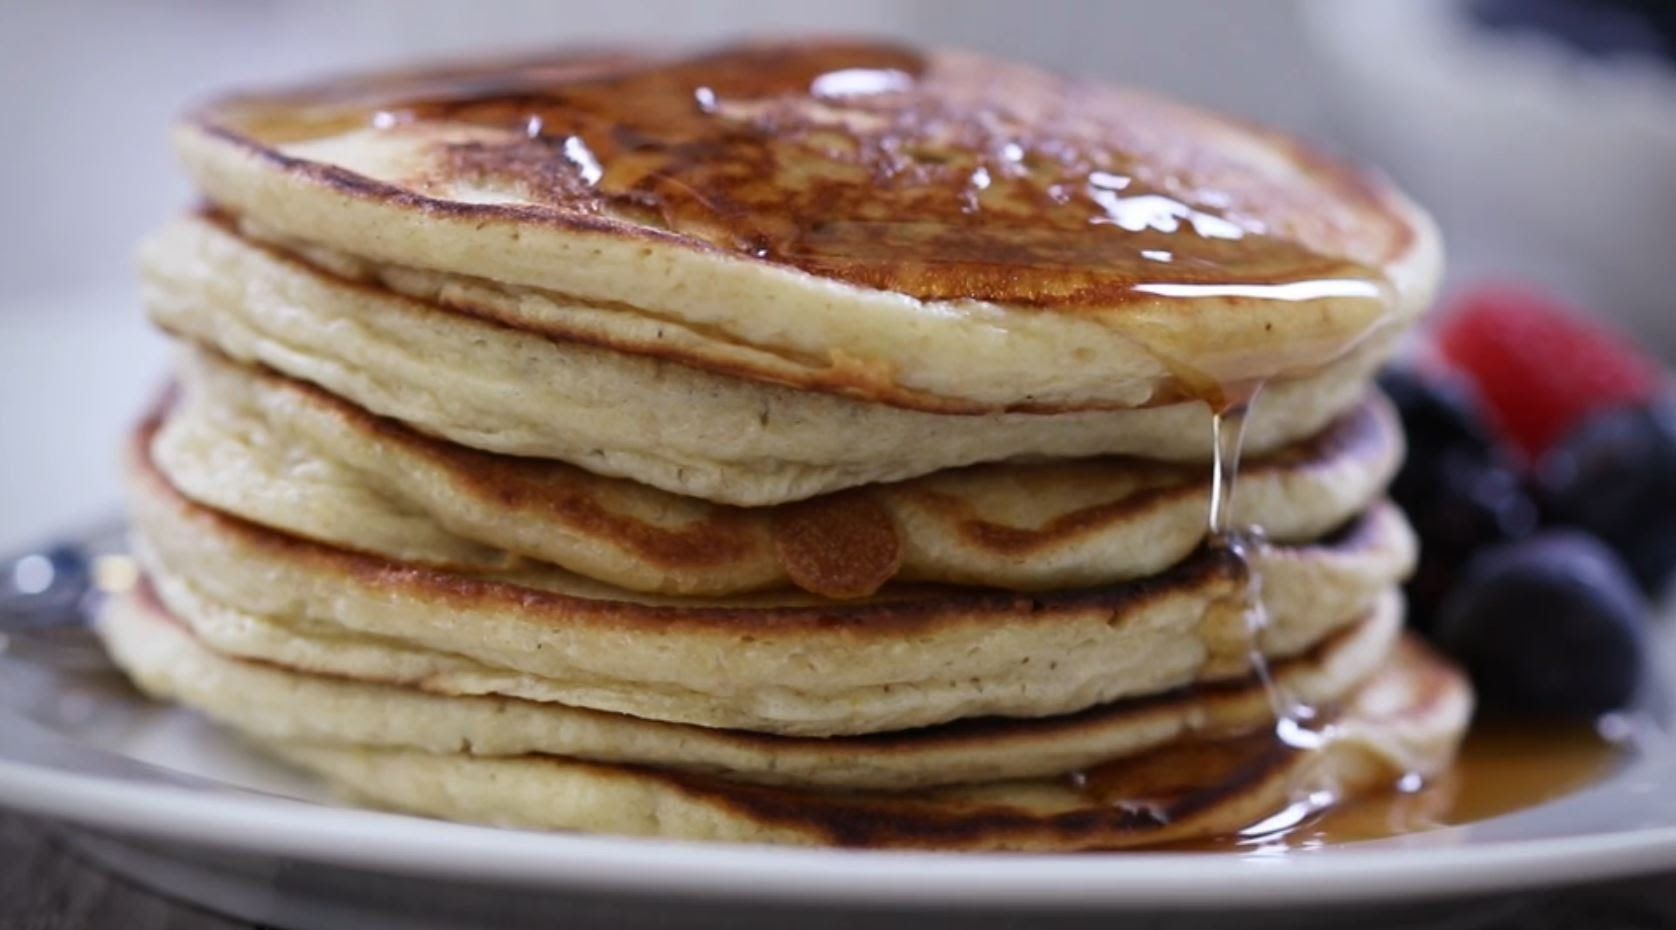 Breakfast recipes how to make oatmeal pancakes pancakes breakfast recipes how to make oatmeal pancakes ccuart Image collections